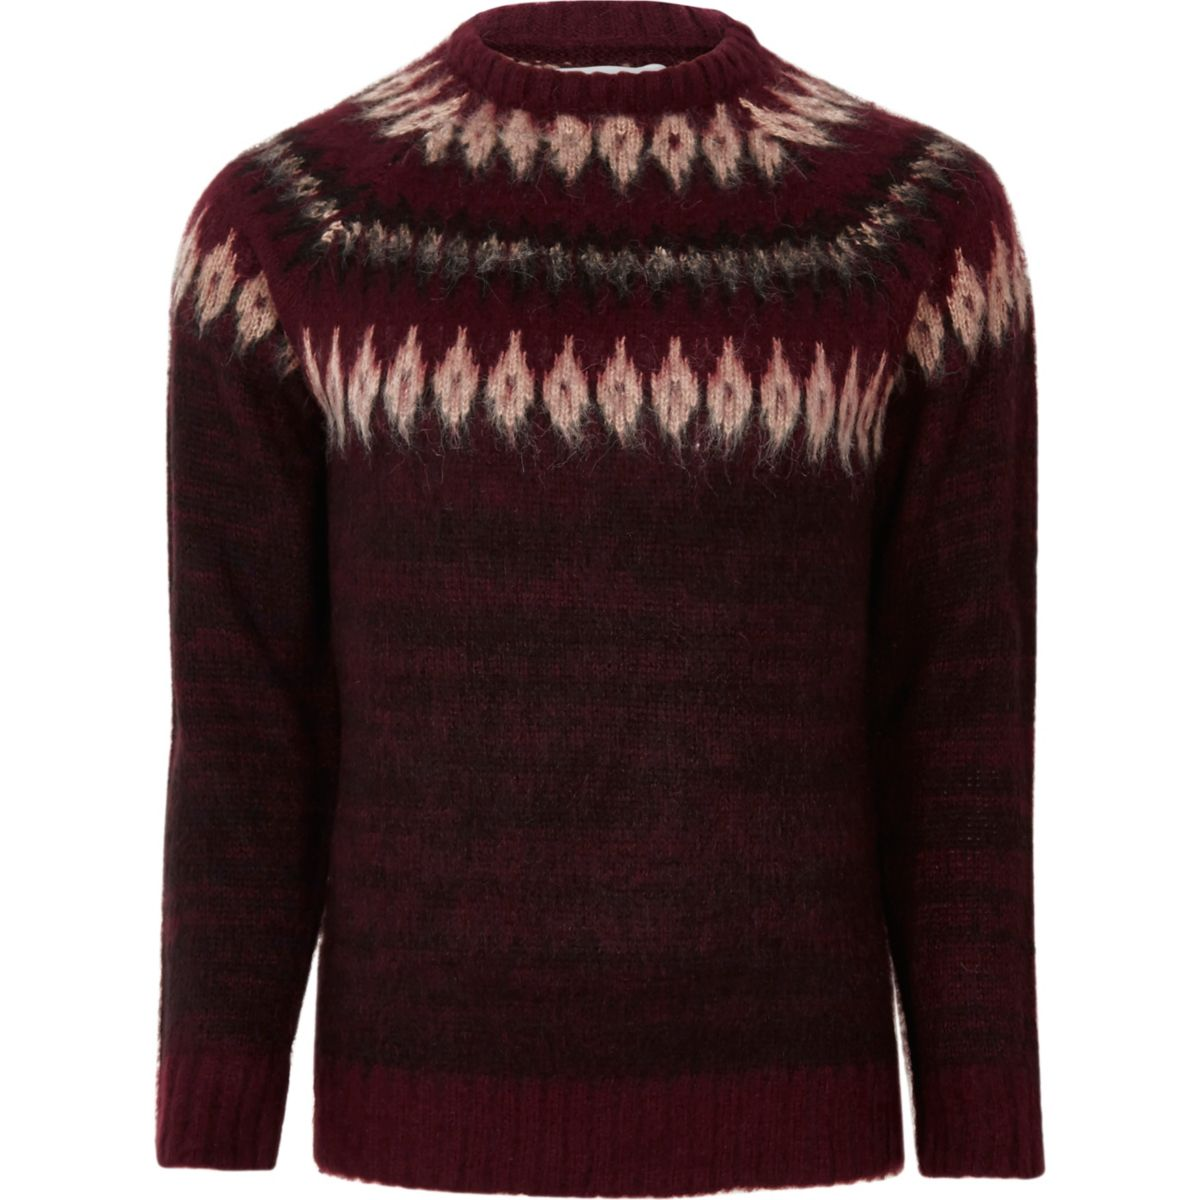 Burgundy Bellfield yoke design knit jumper